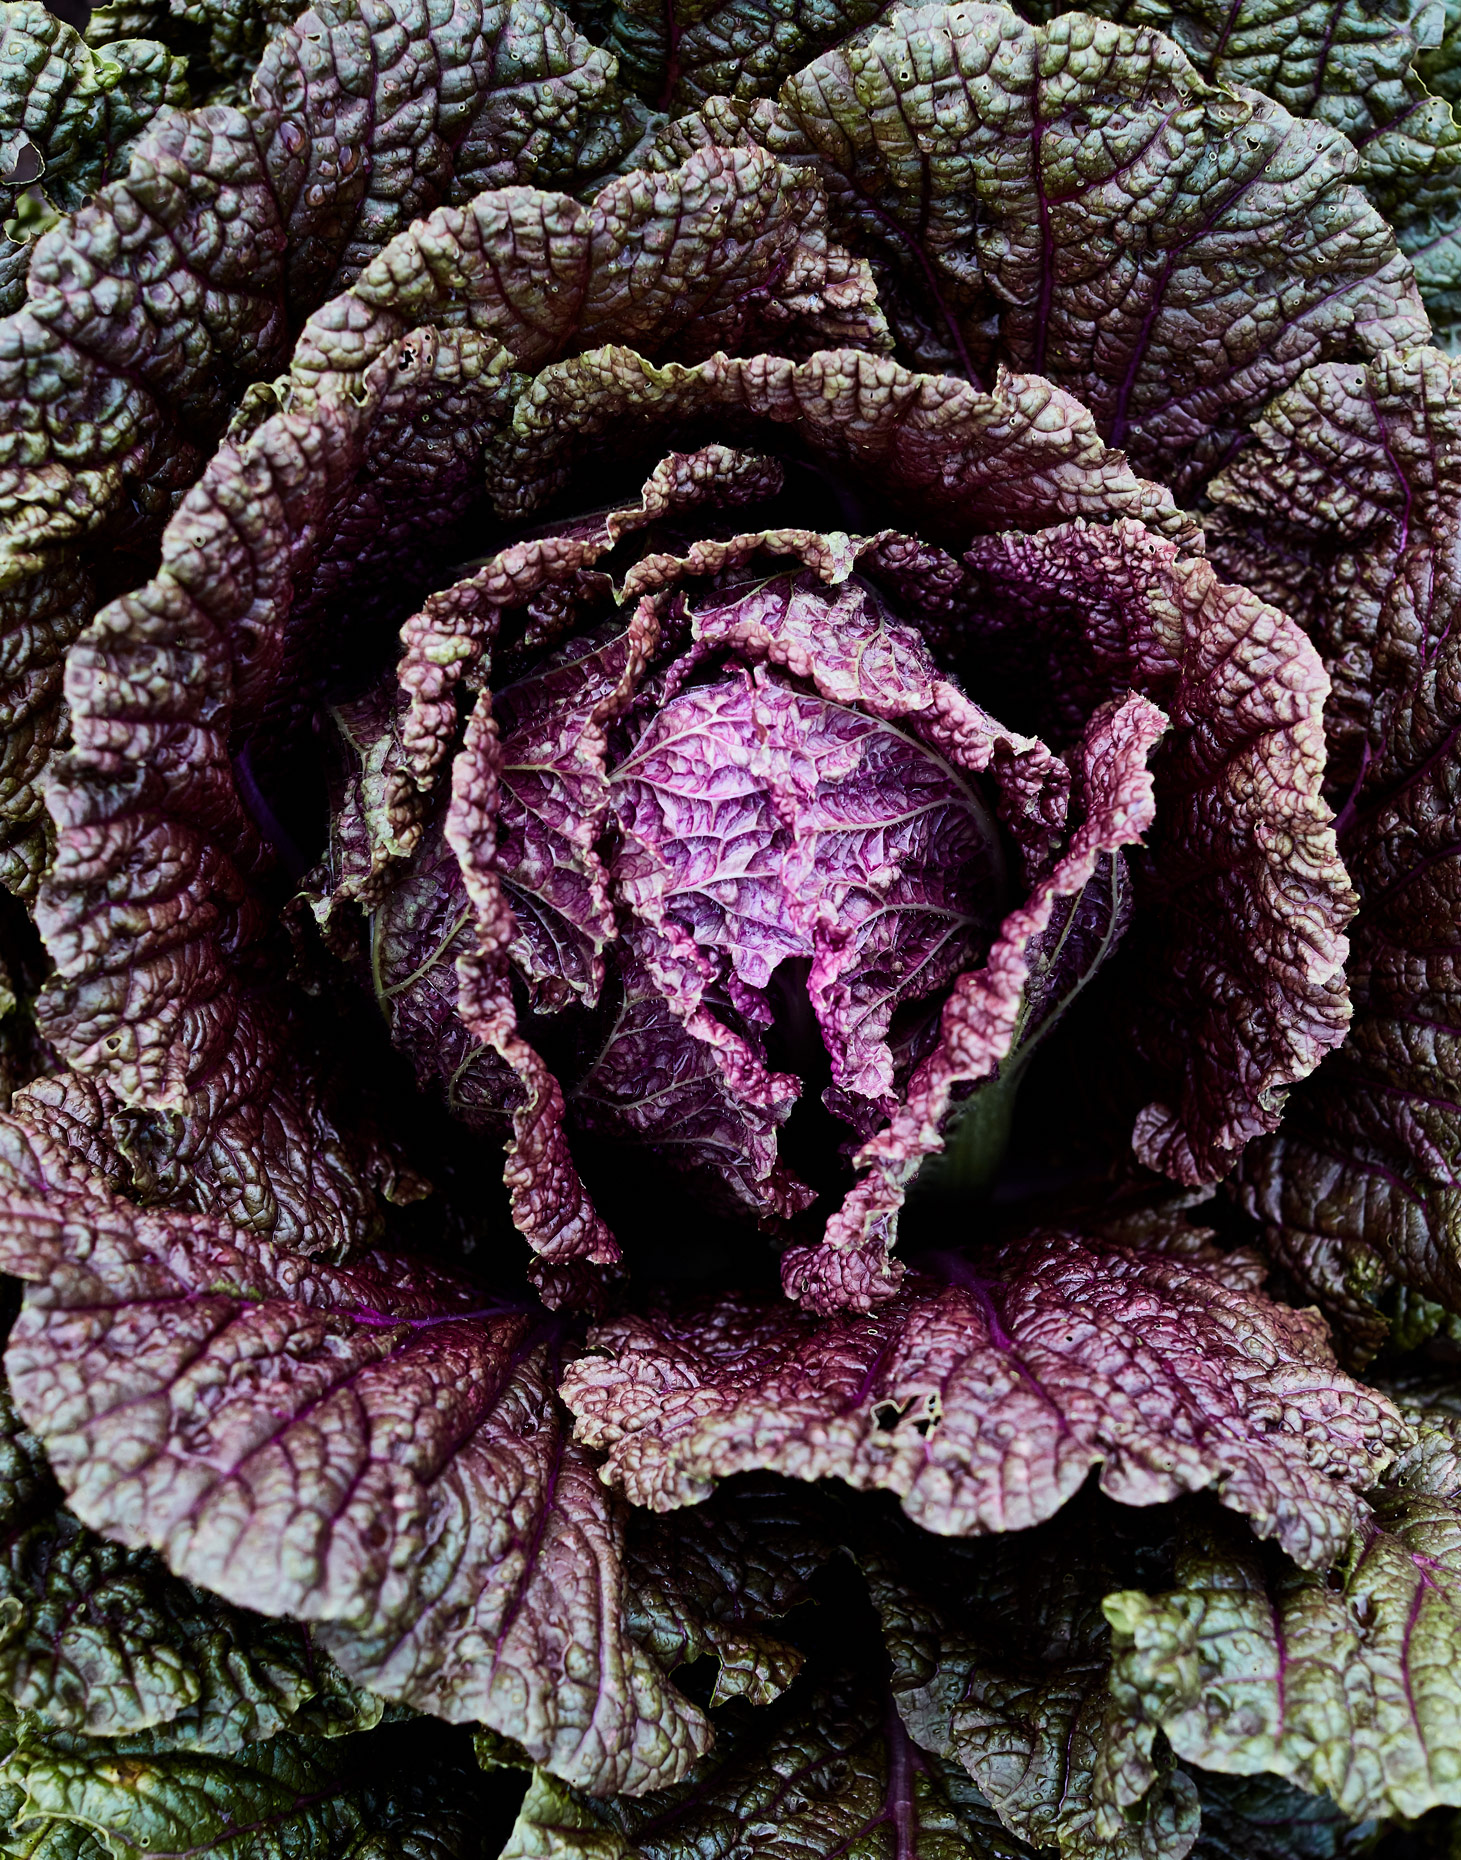 7985-JM-S02-Cabbage-0428